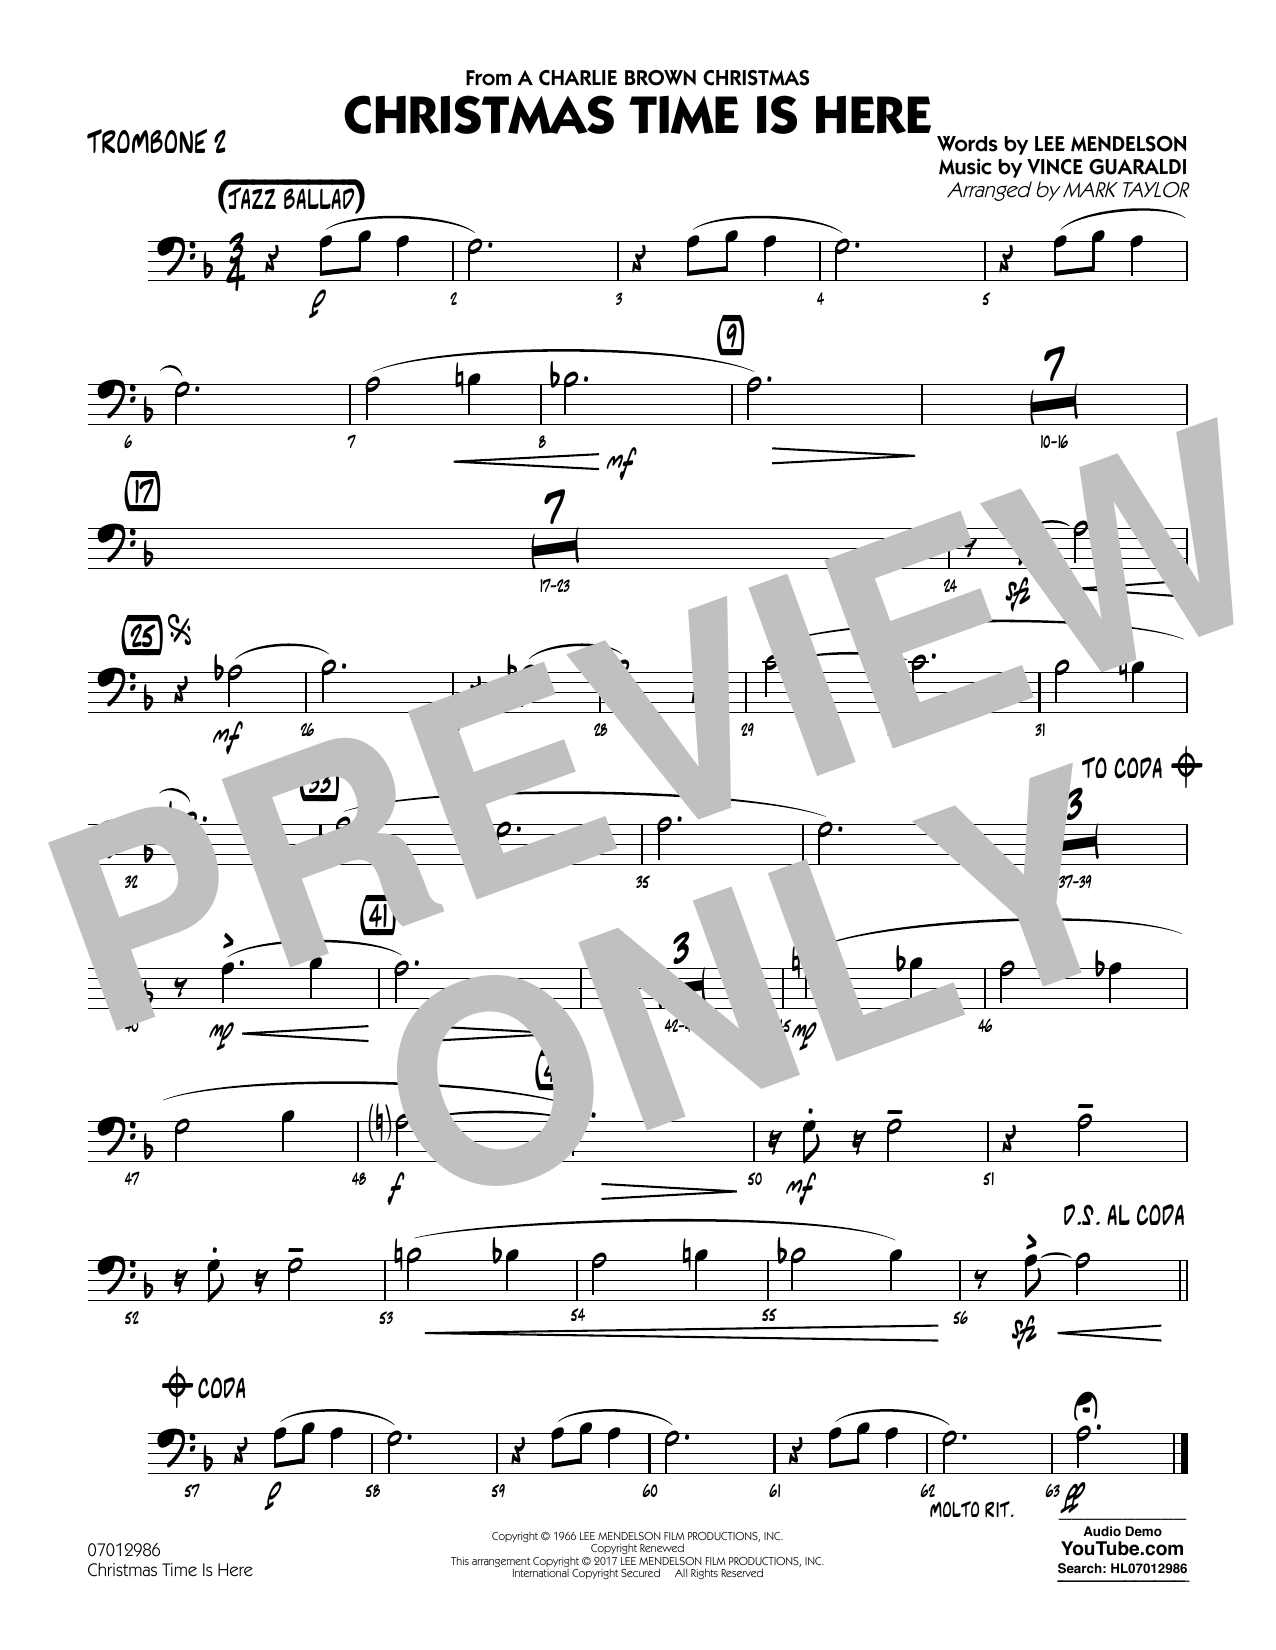 Christmas Time Is Here - Trombone 2 Sheet Music